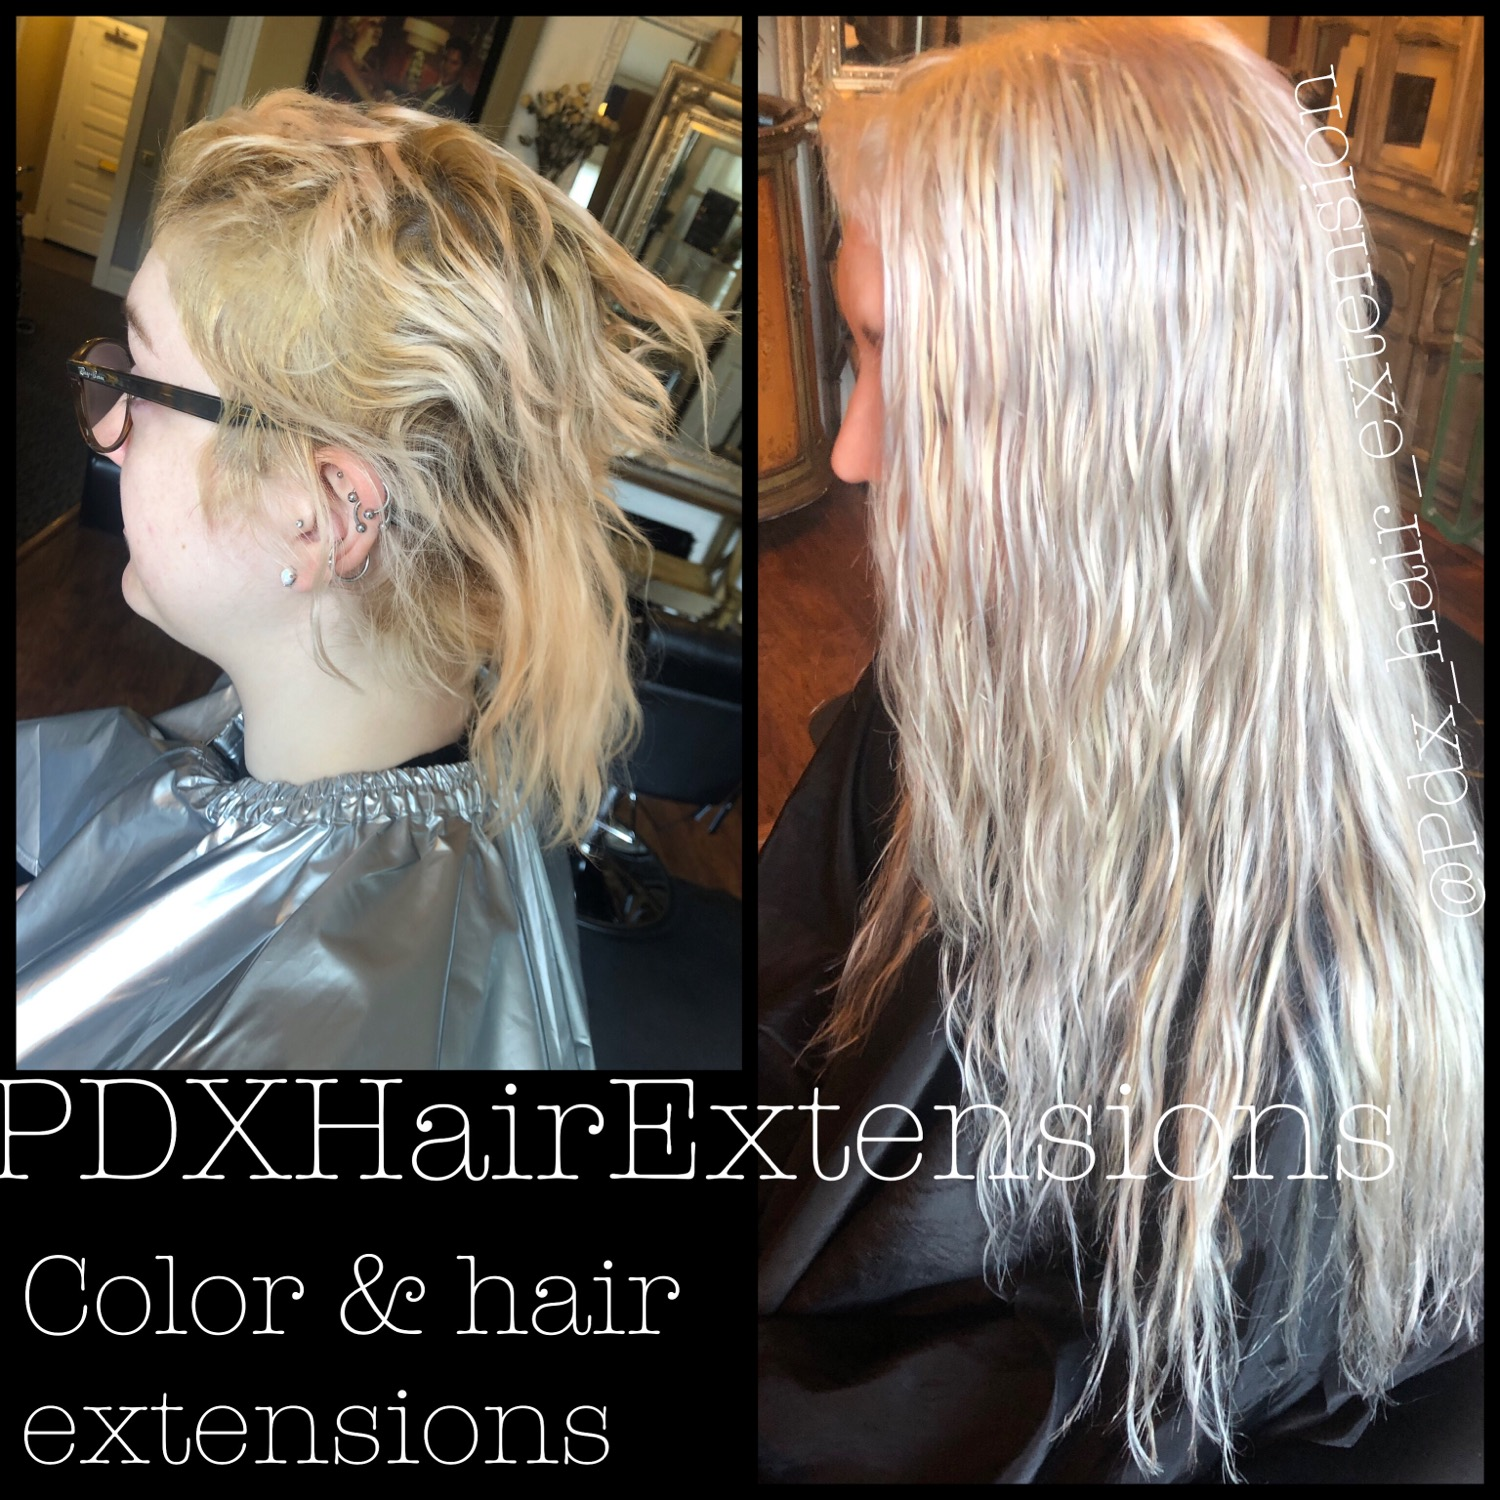 Blonde, Air-Dried Extensions